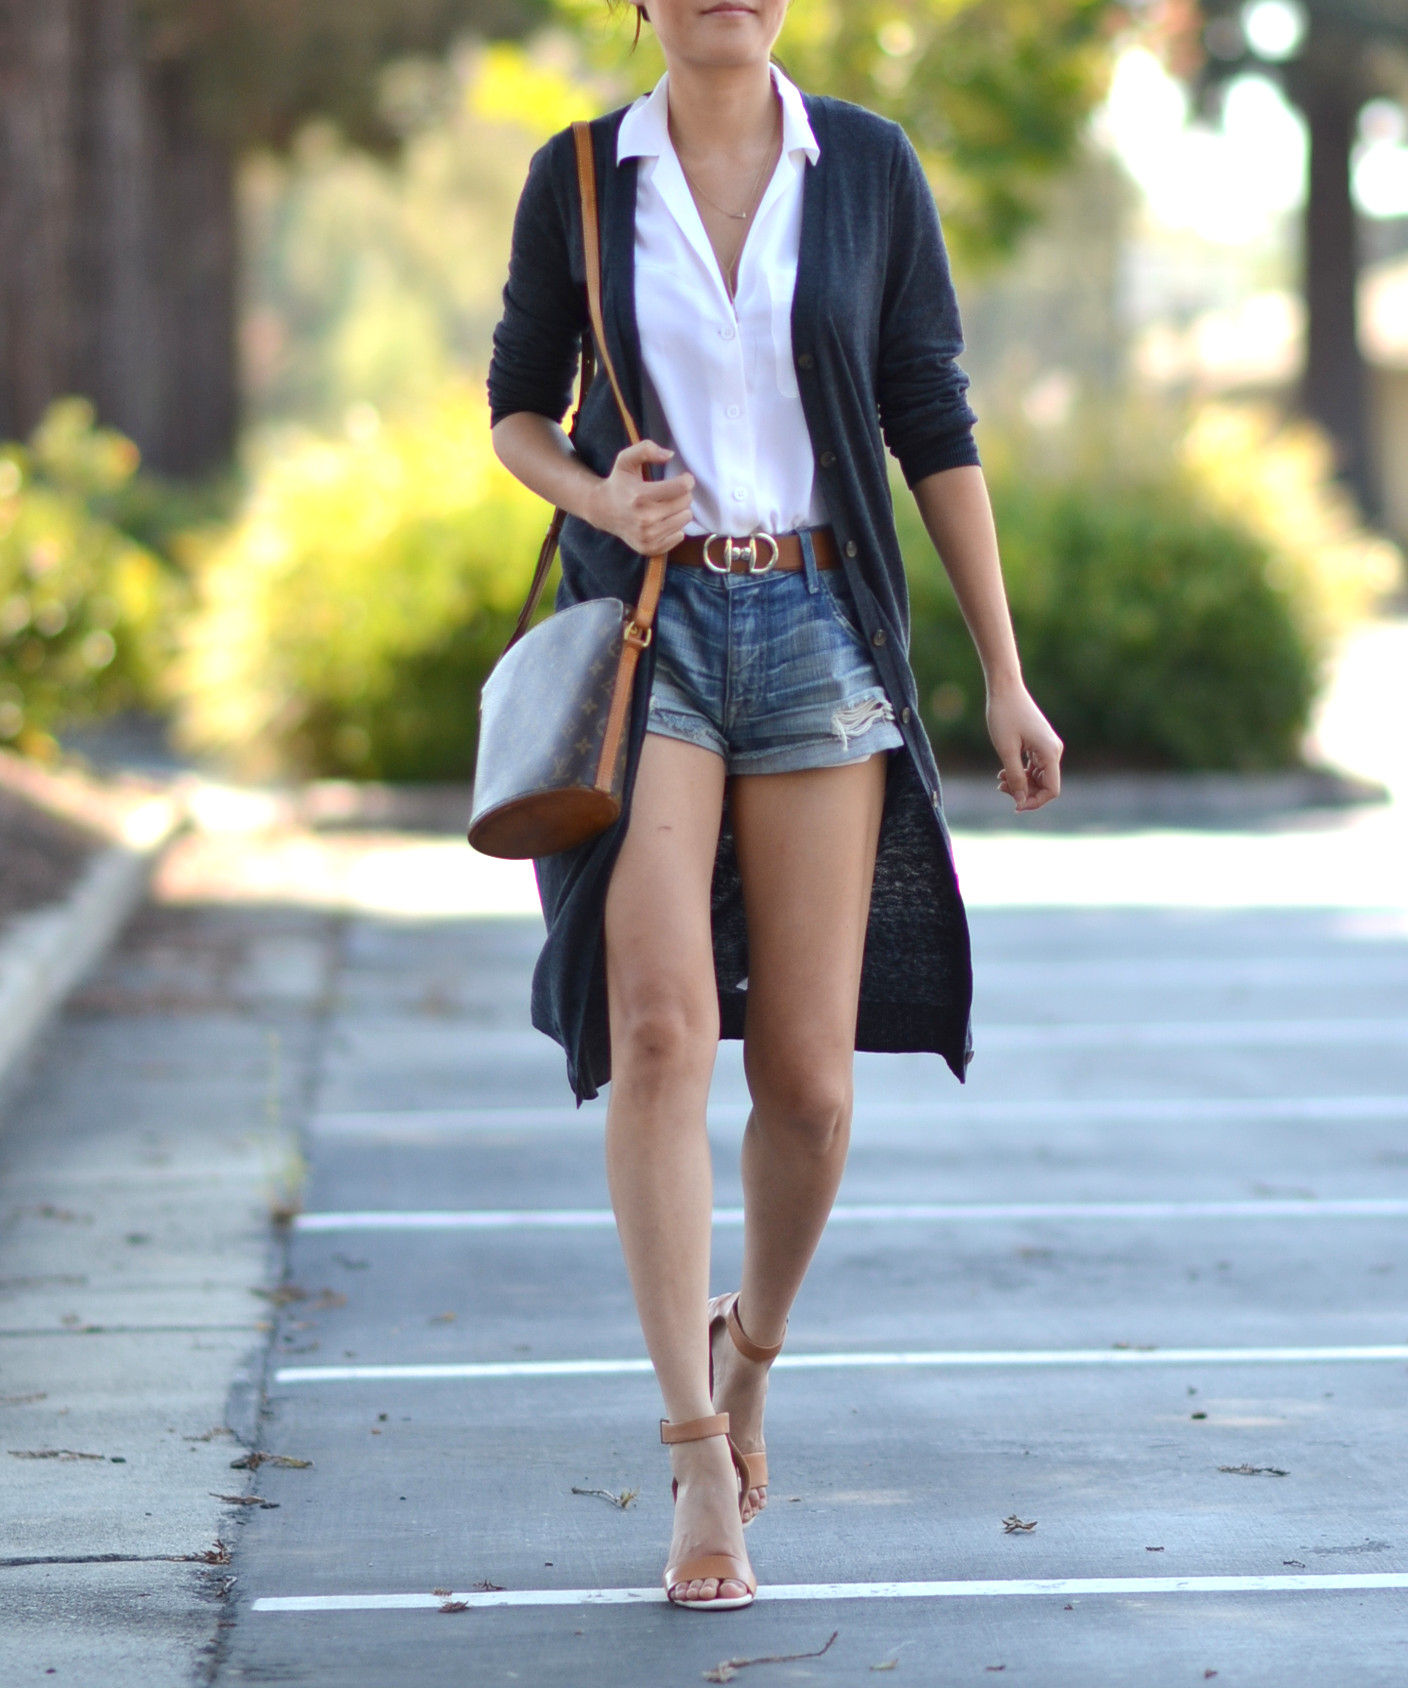 denim shorts silk blouse reversible belt long cardigan outfit with louis vuitton druout bag